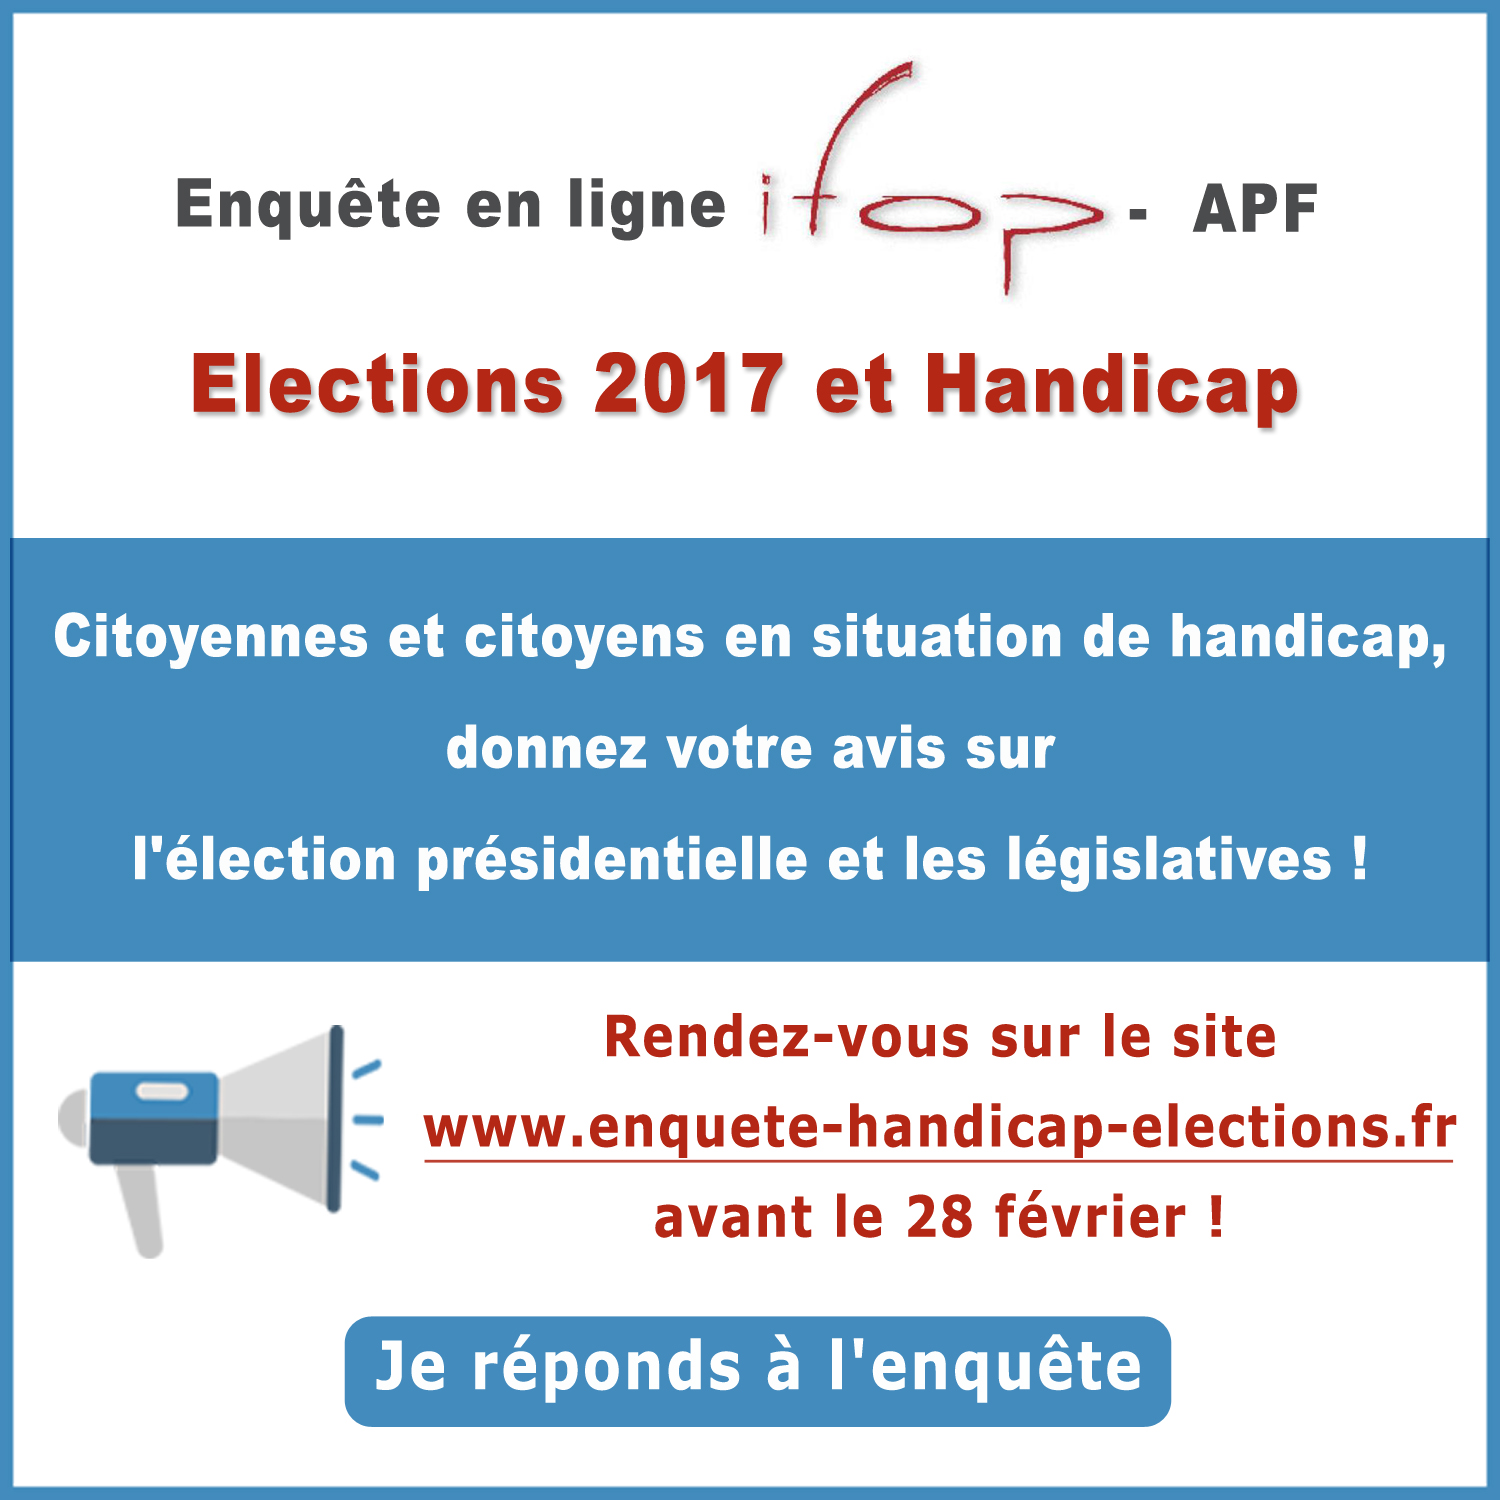 http://dcdr.blogs.apf.asso.fr/media/00/01/4131808507.jpg